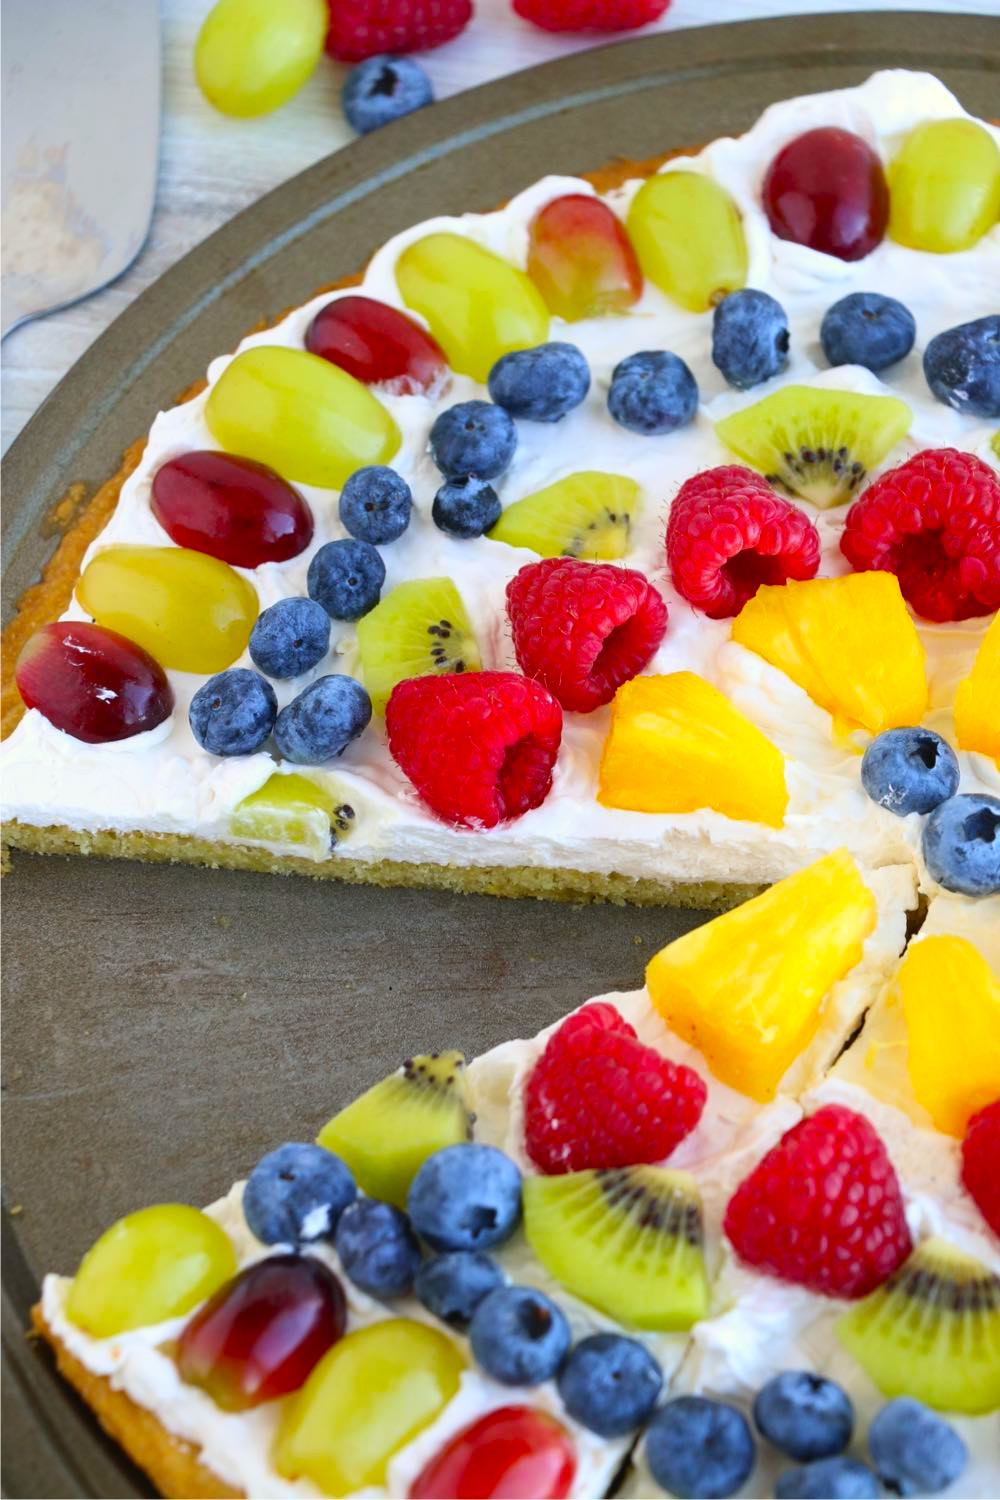 Fruit pizza with piece taken out